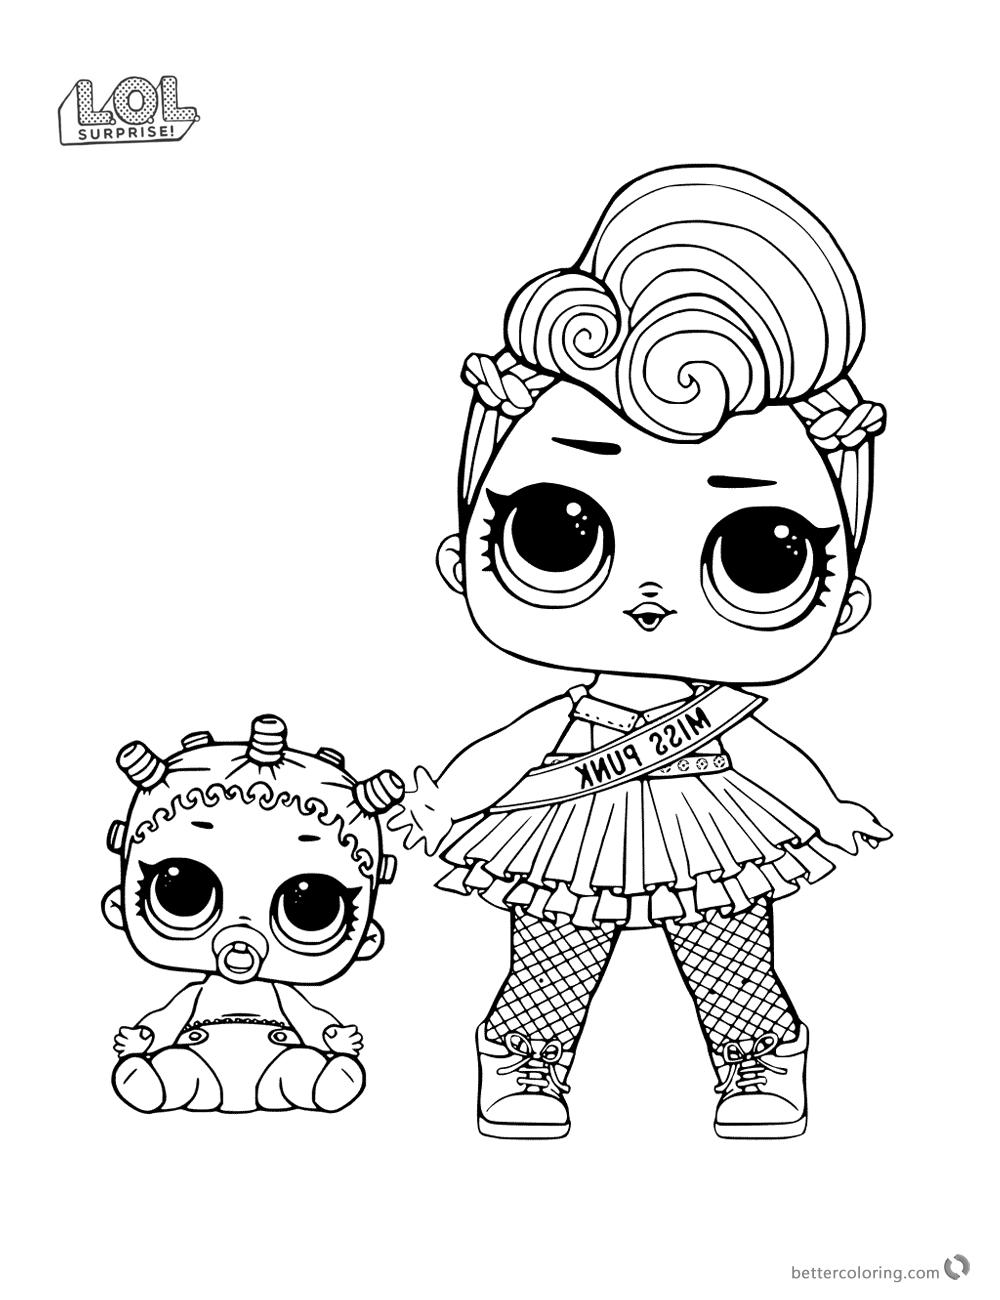 Free Miss Punk Lol Surprise Doll Coloring Pages Printable Cool Coloring Pages Halloween Coloring Pages Coloring Pages